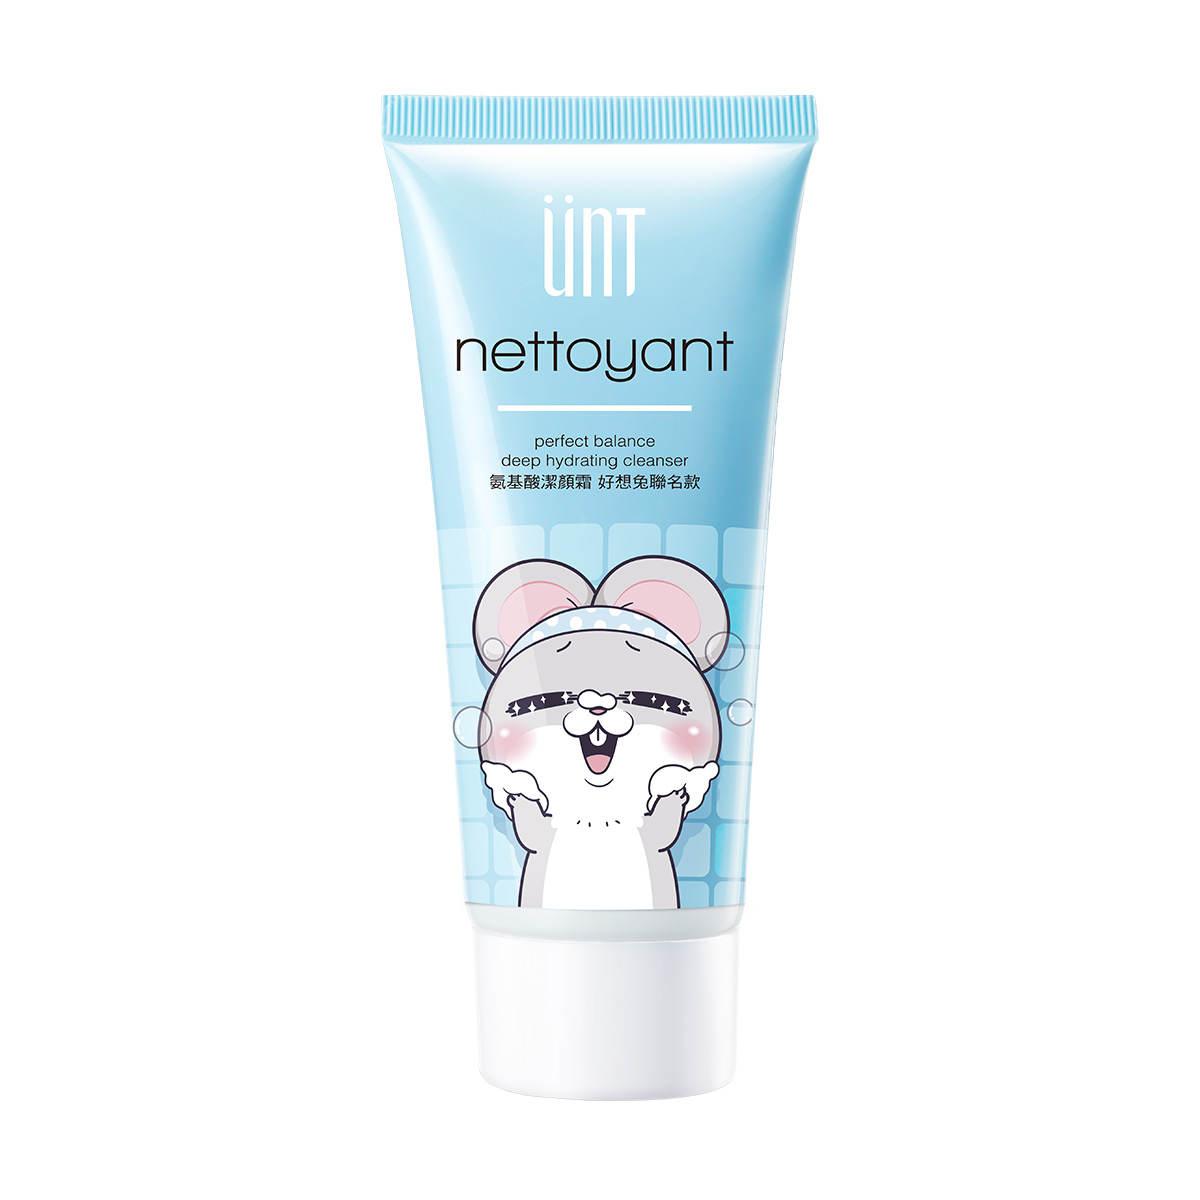 AQUA NETTOYANT Very Miss Rabbit